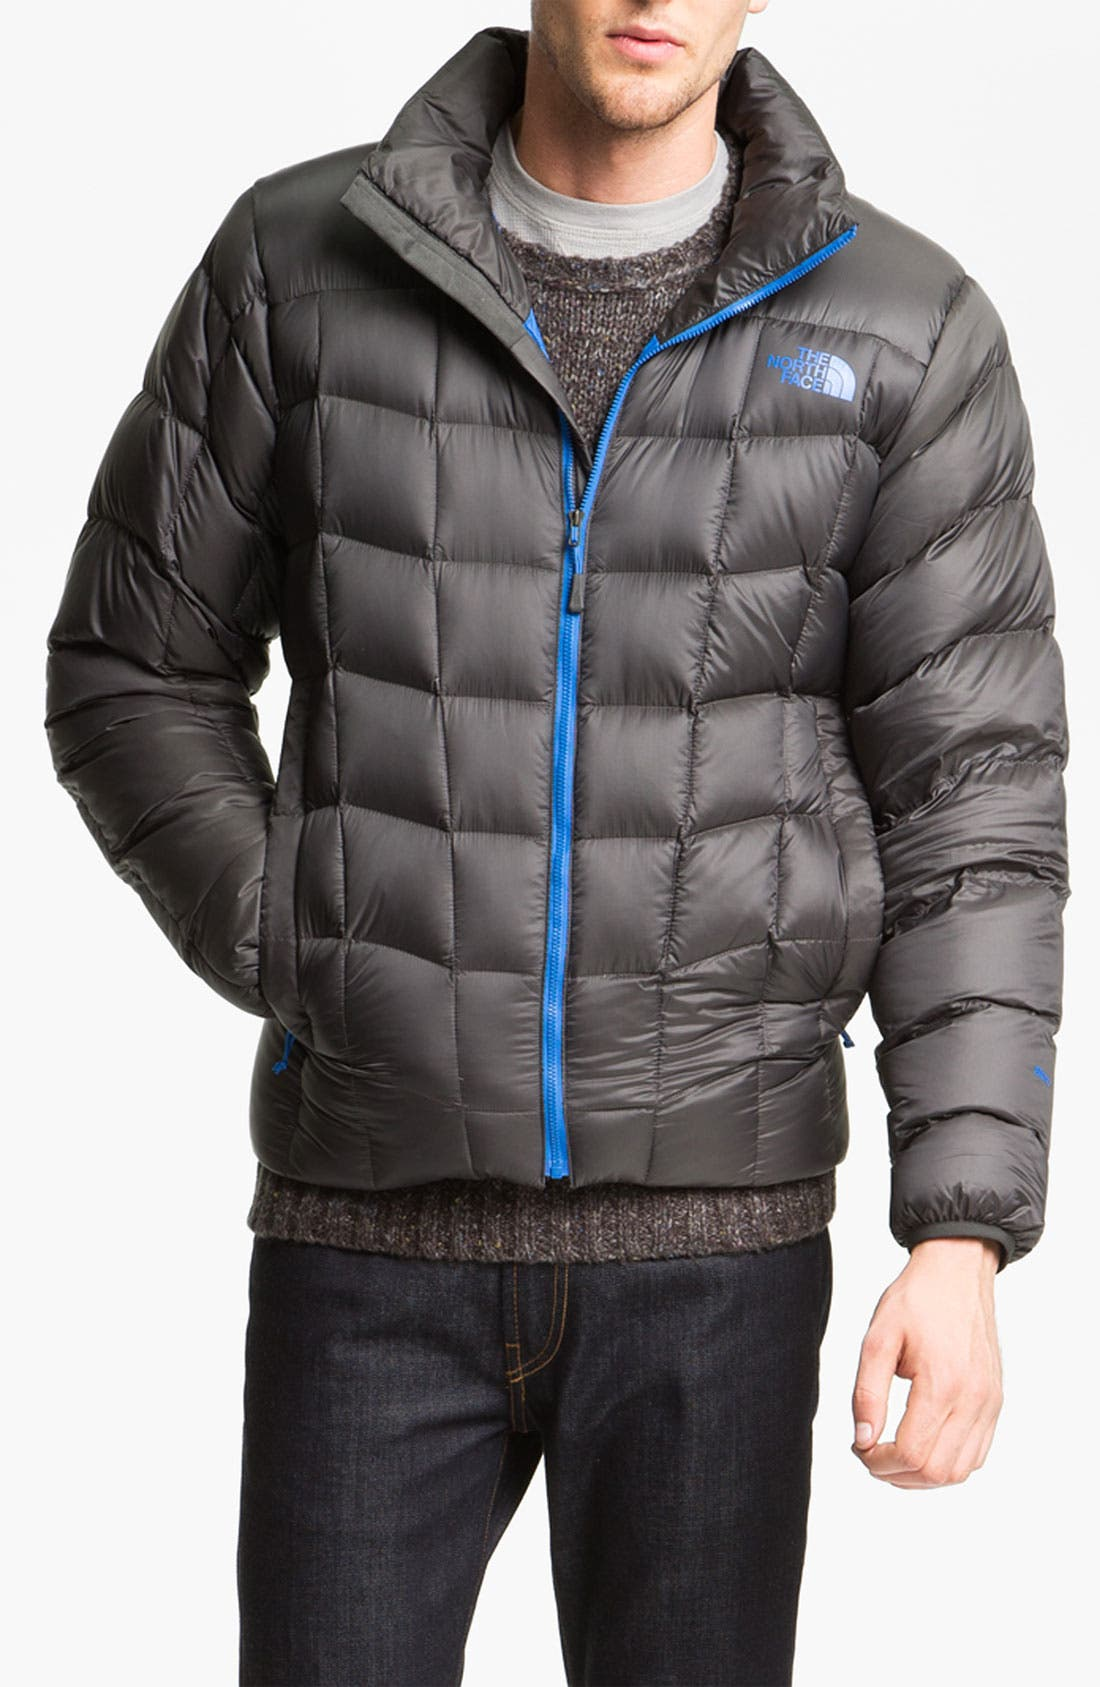 Main Image - The North Face 'Down Under' Jacket